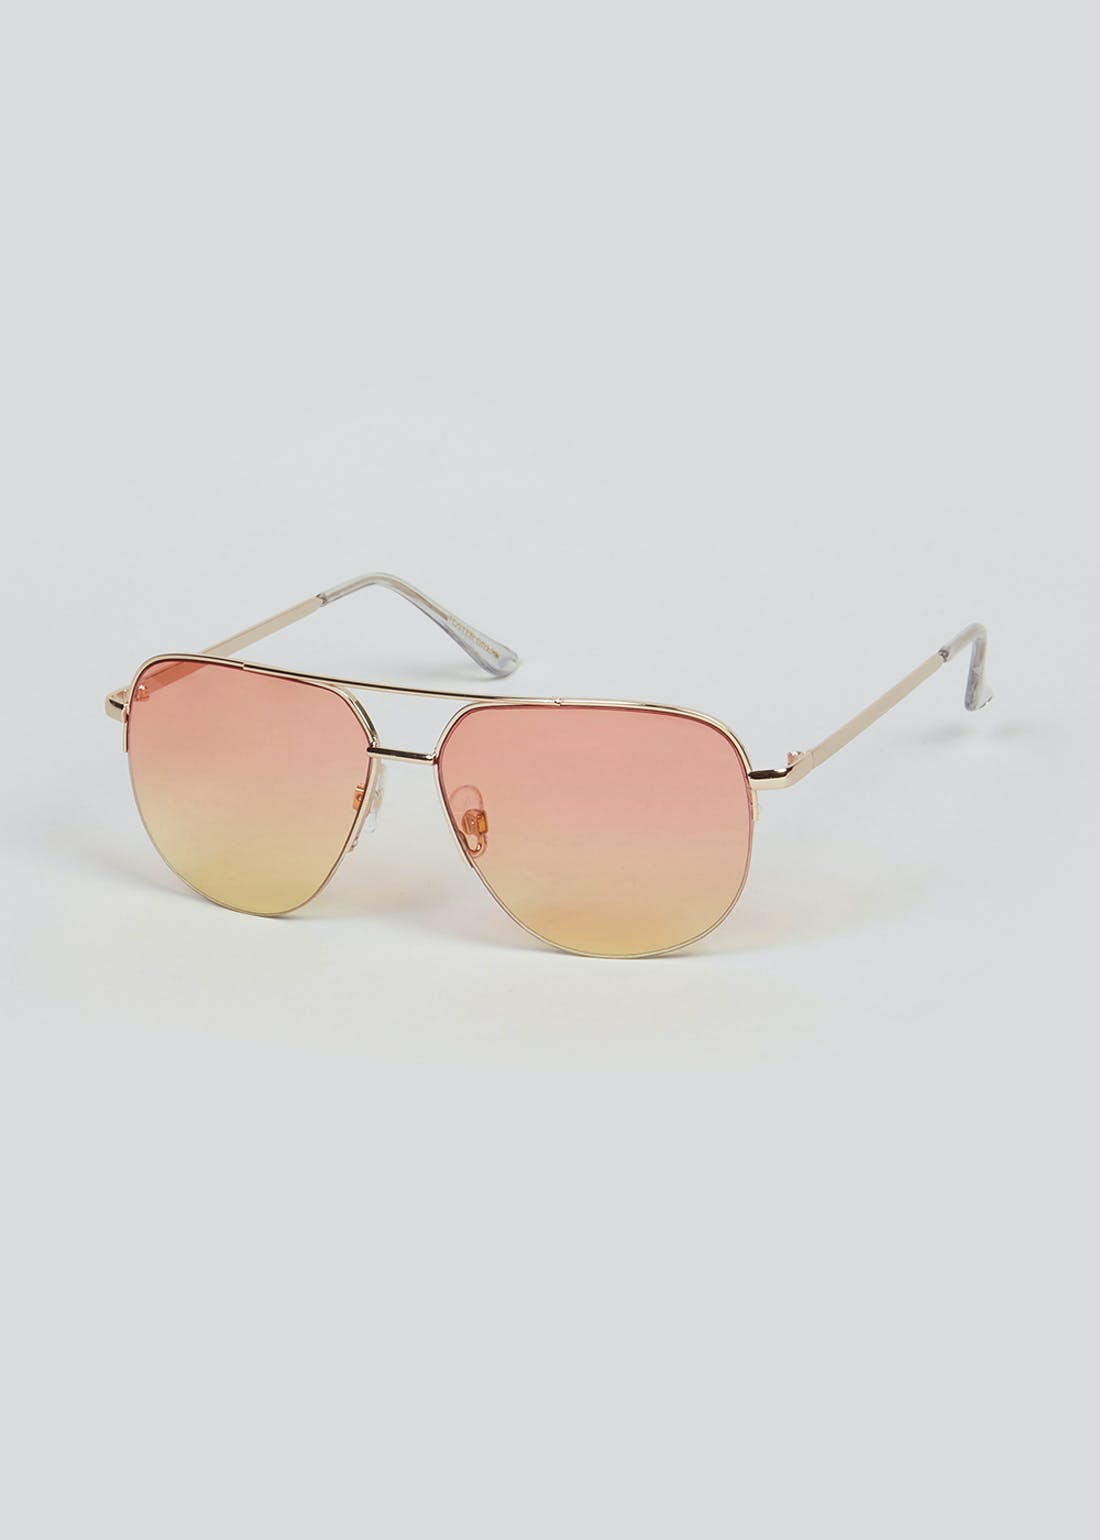 Foster Grant Tinted Square Aviator Sunglasses